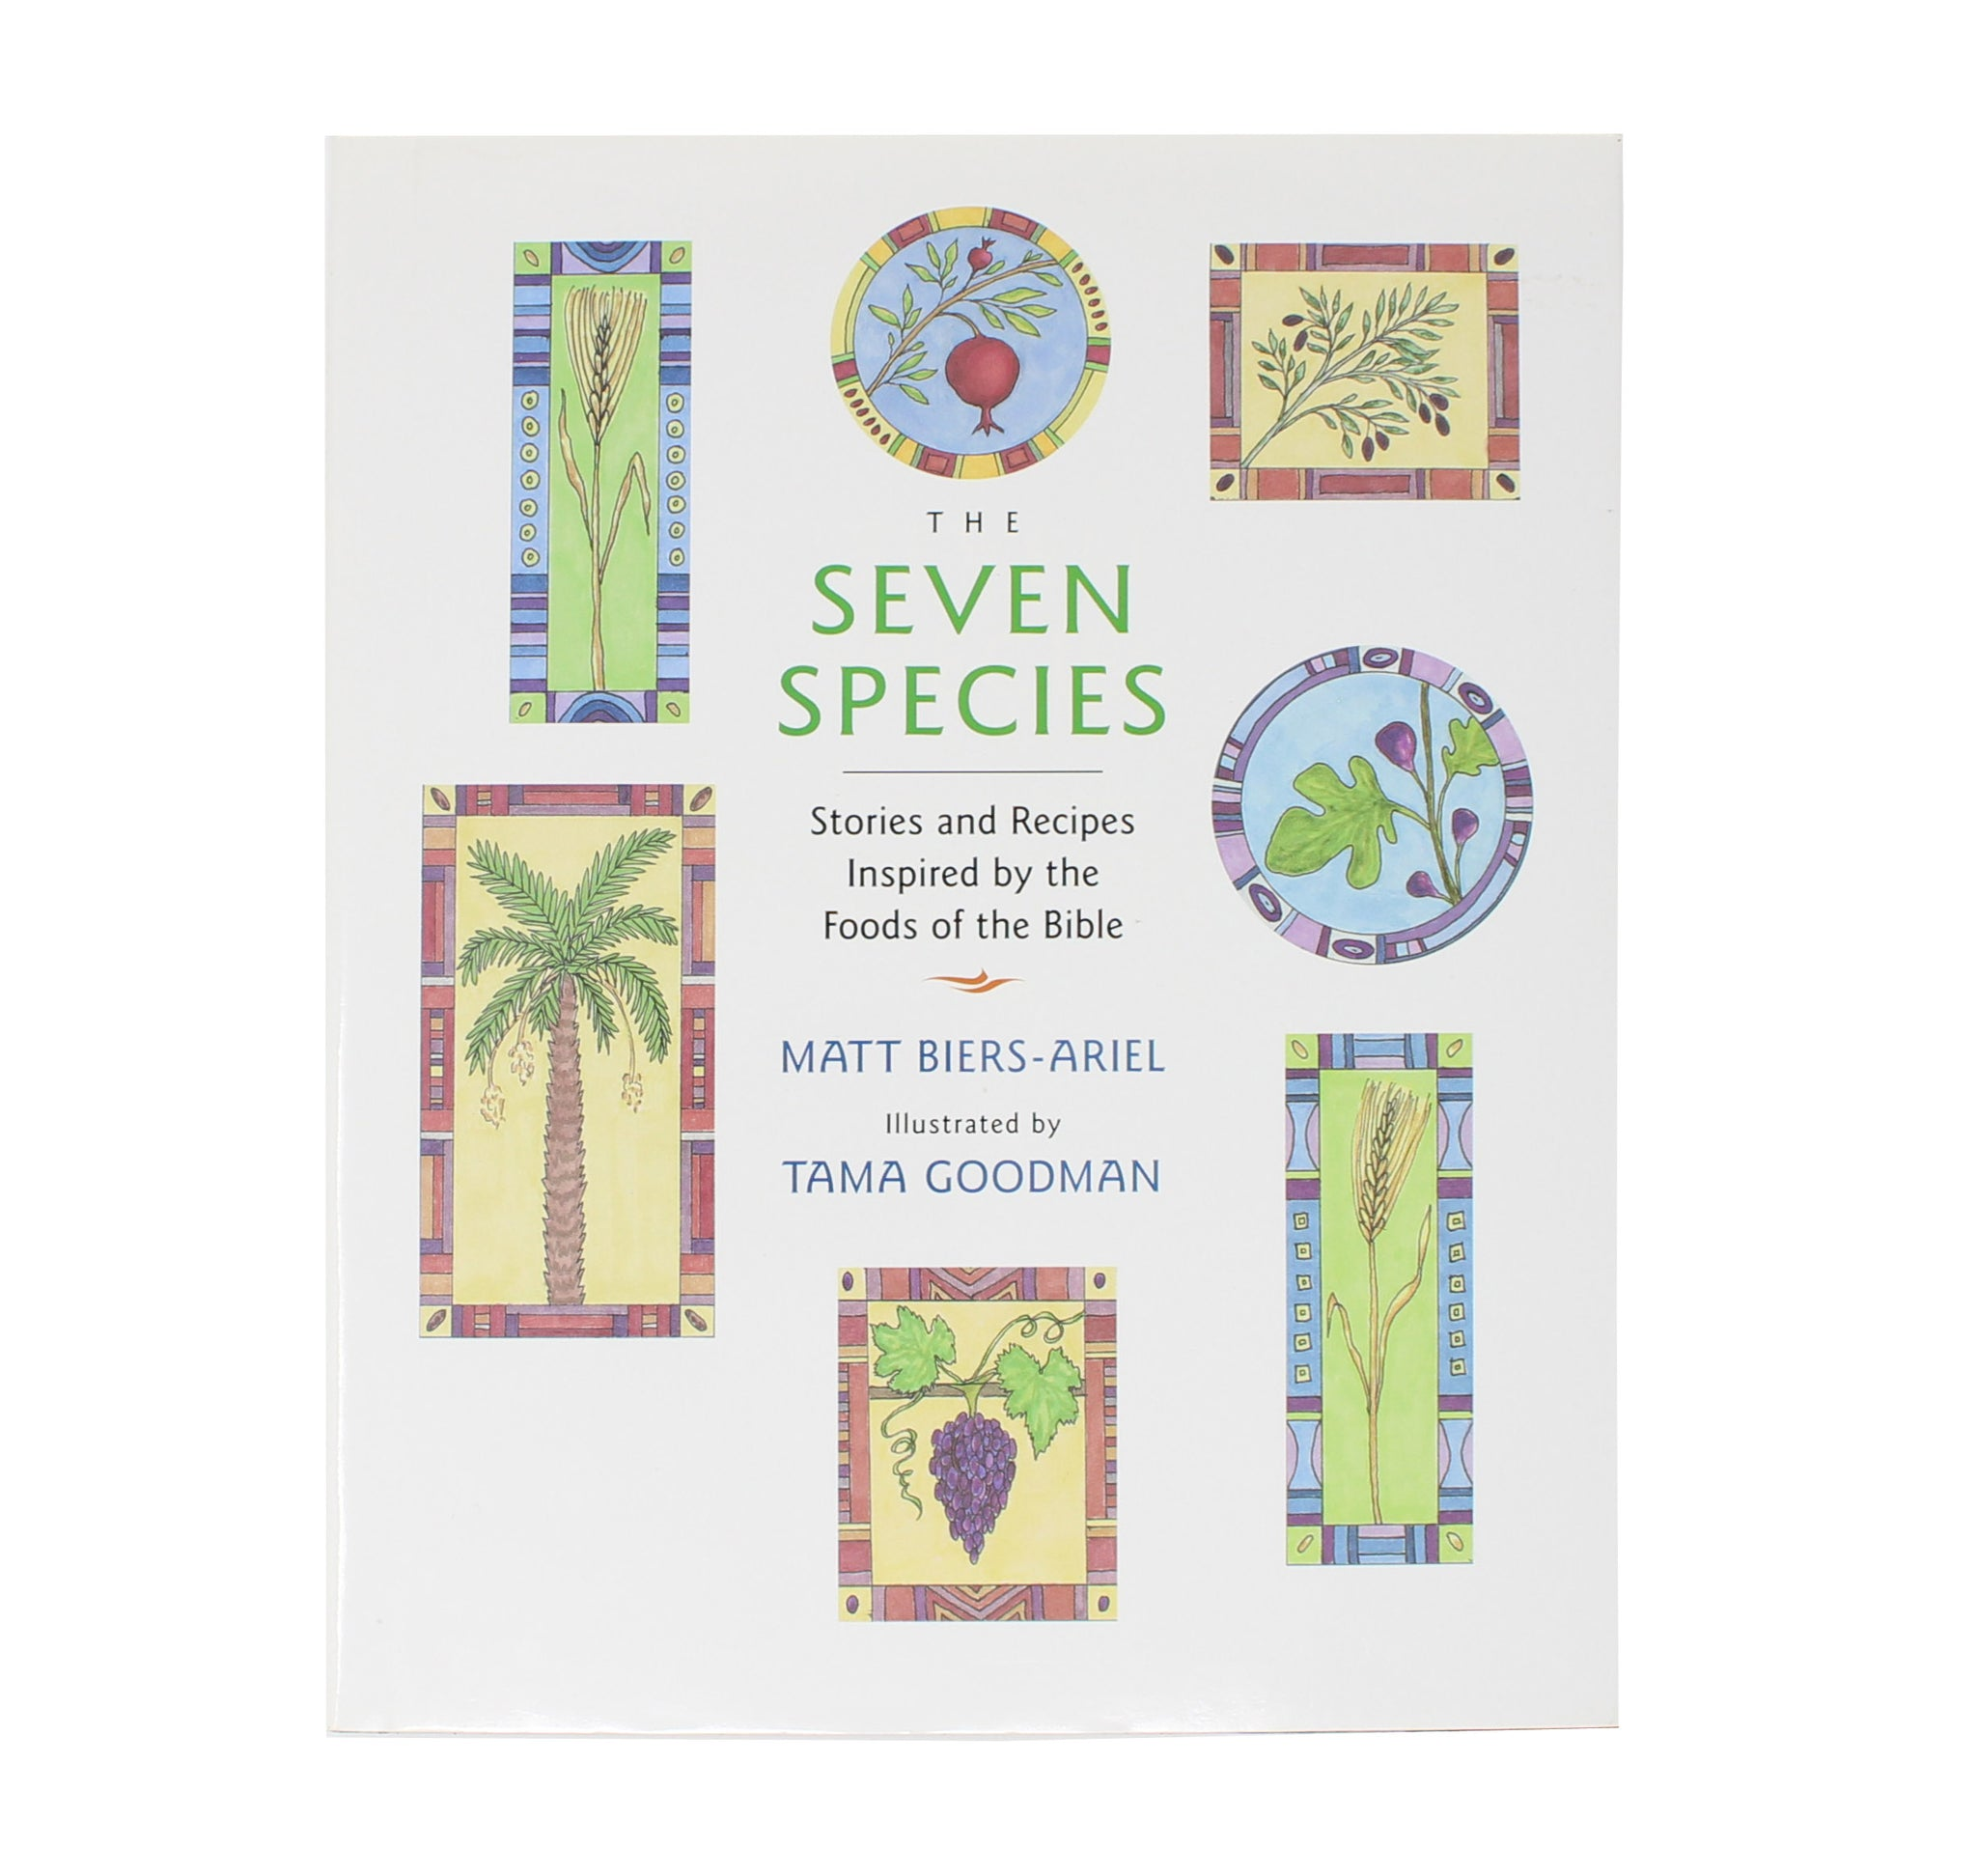 The Seven Species: Stories and Recipes Inspired by the Foods of the Bible